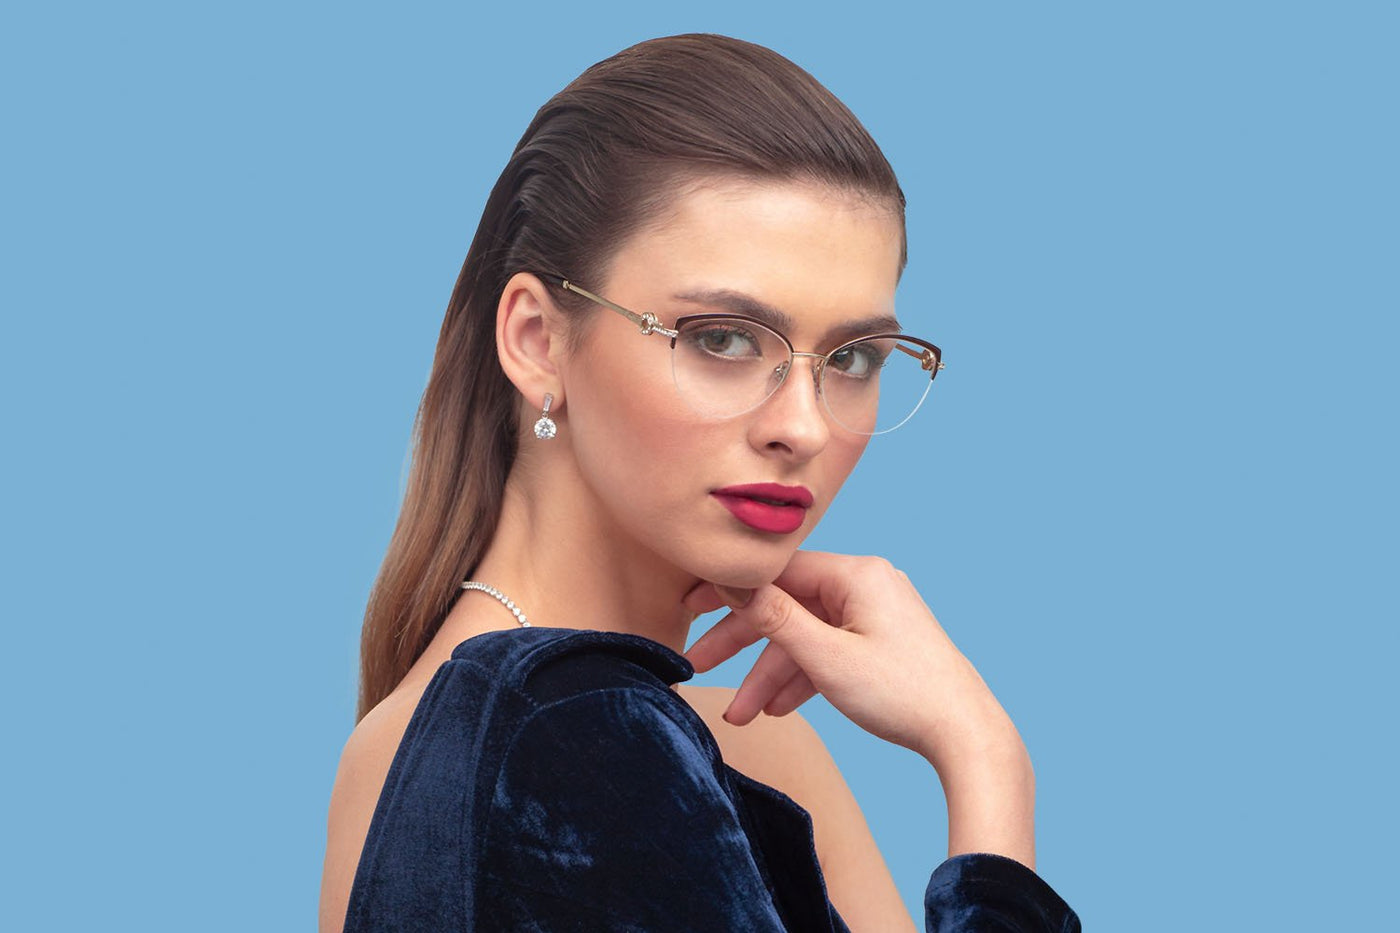 Eyewear Trends That Will Win Over 2020 - Vision Express Philippines